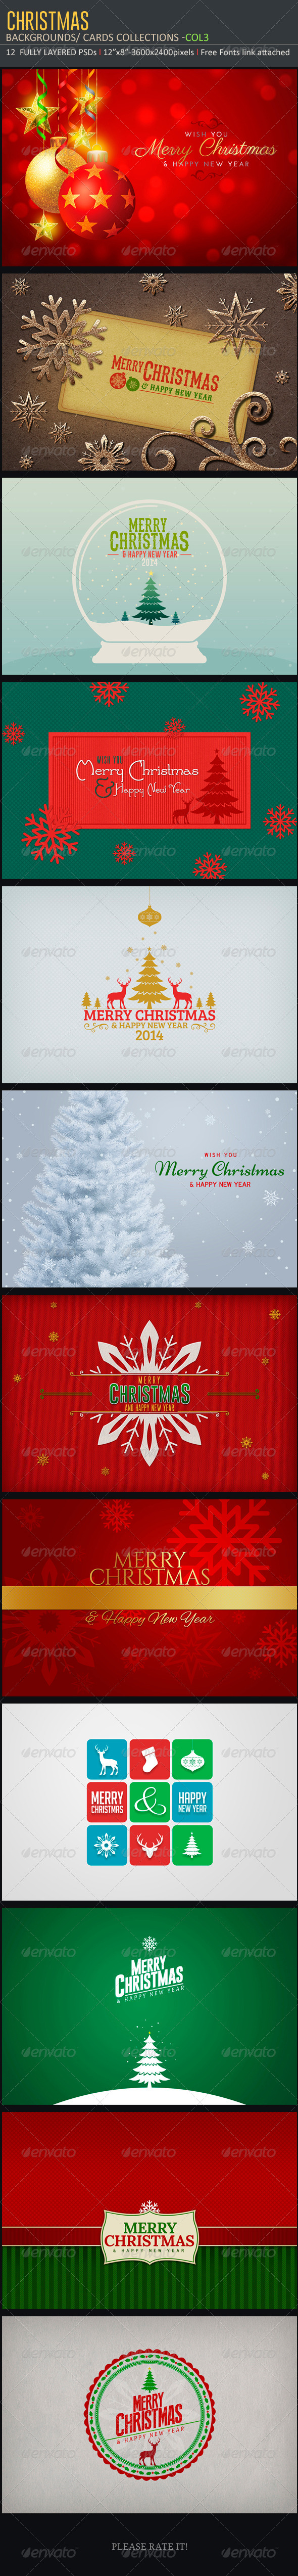 GraphicRiver Christmas Backgrounds-Cards Col3 6027313